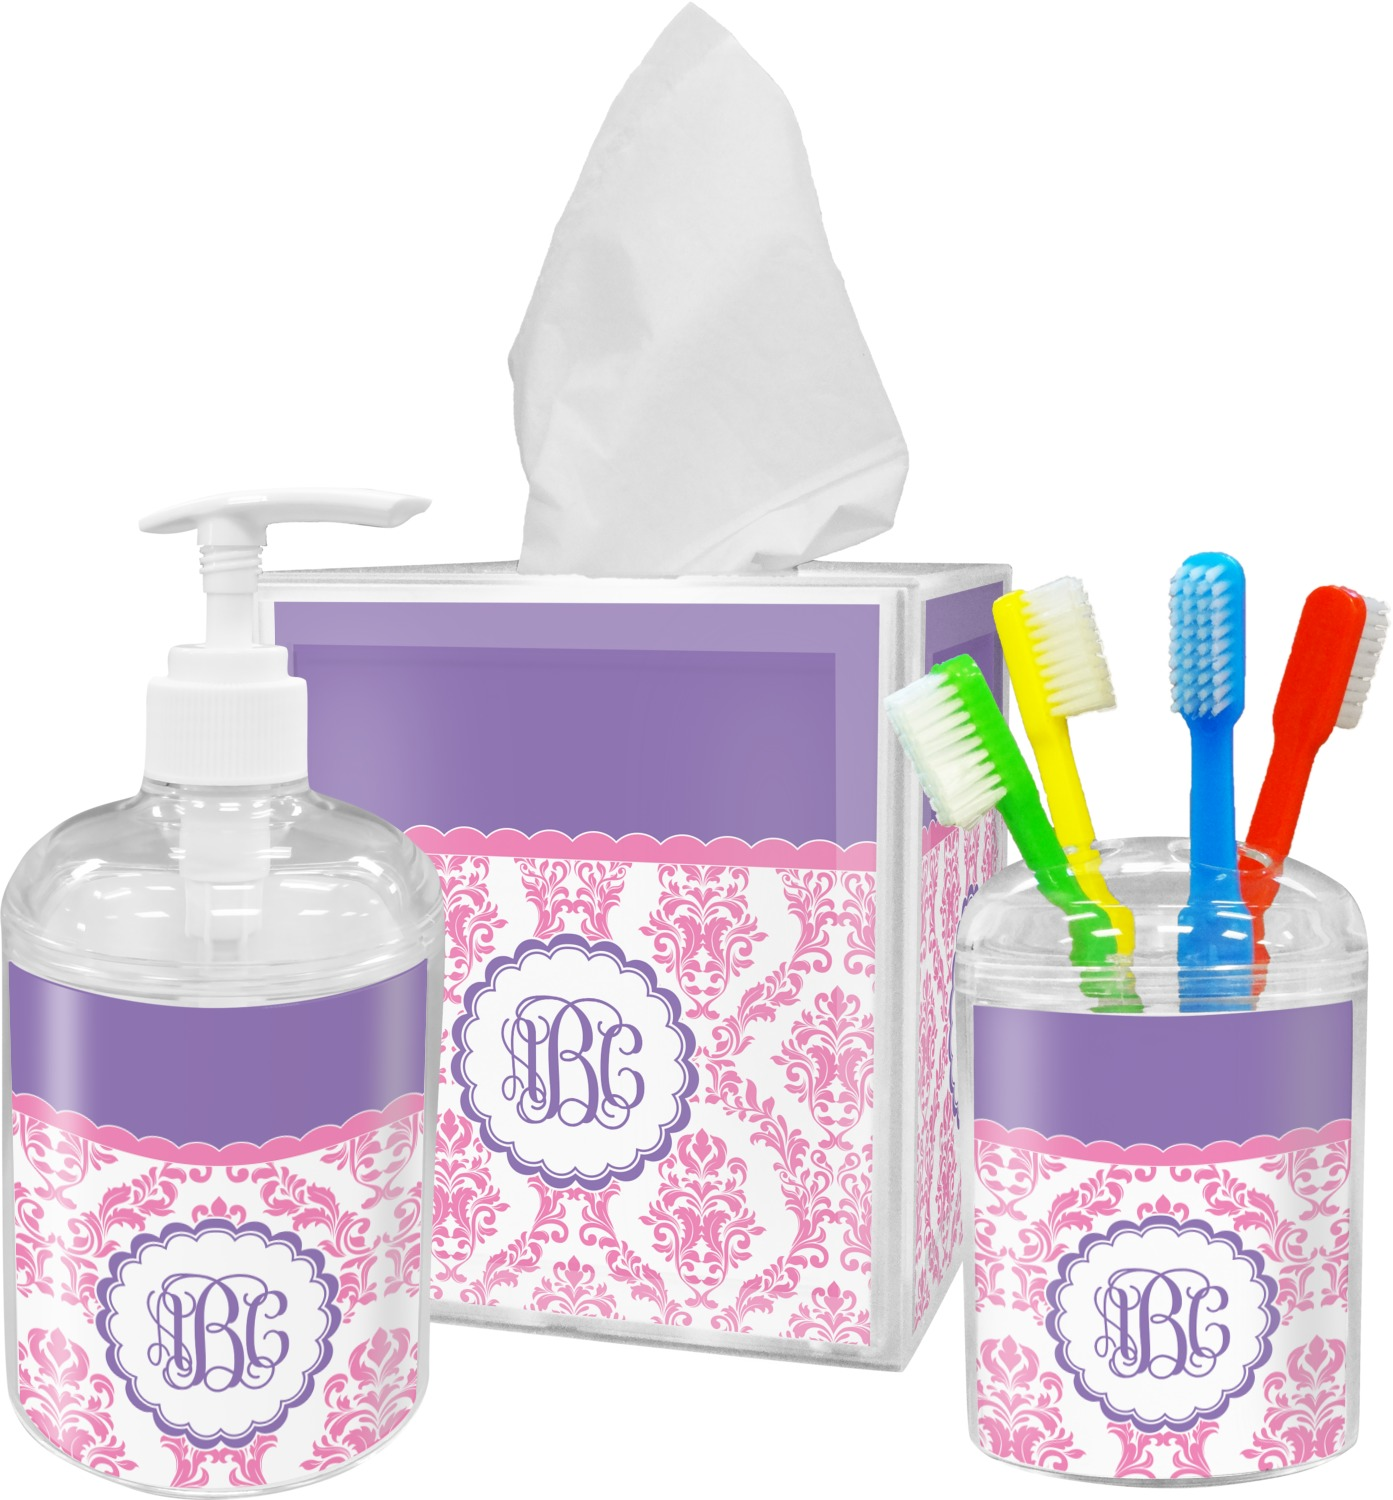 Pink white purple damask toothbrush holder for Purple and white bathroom accessories